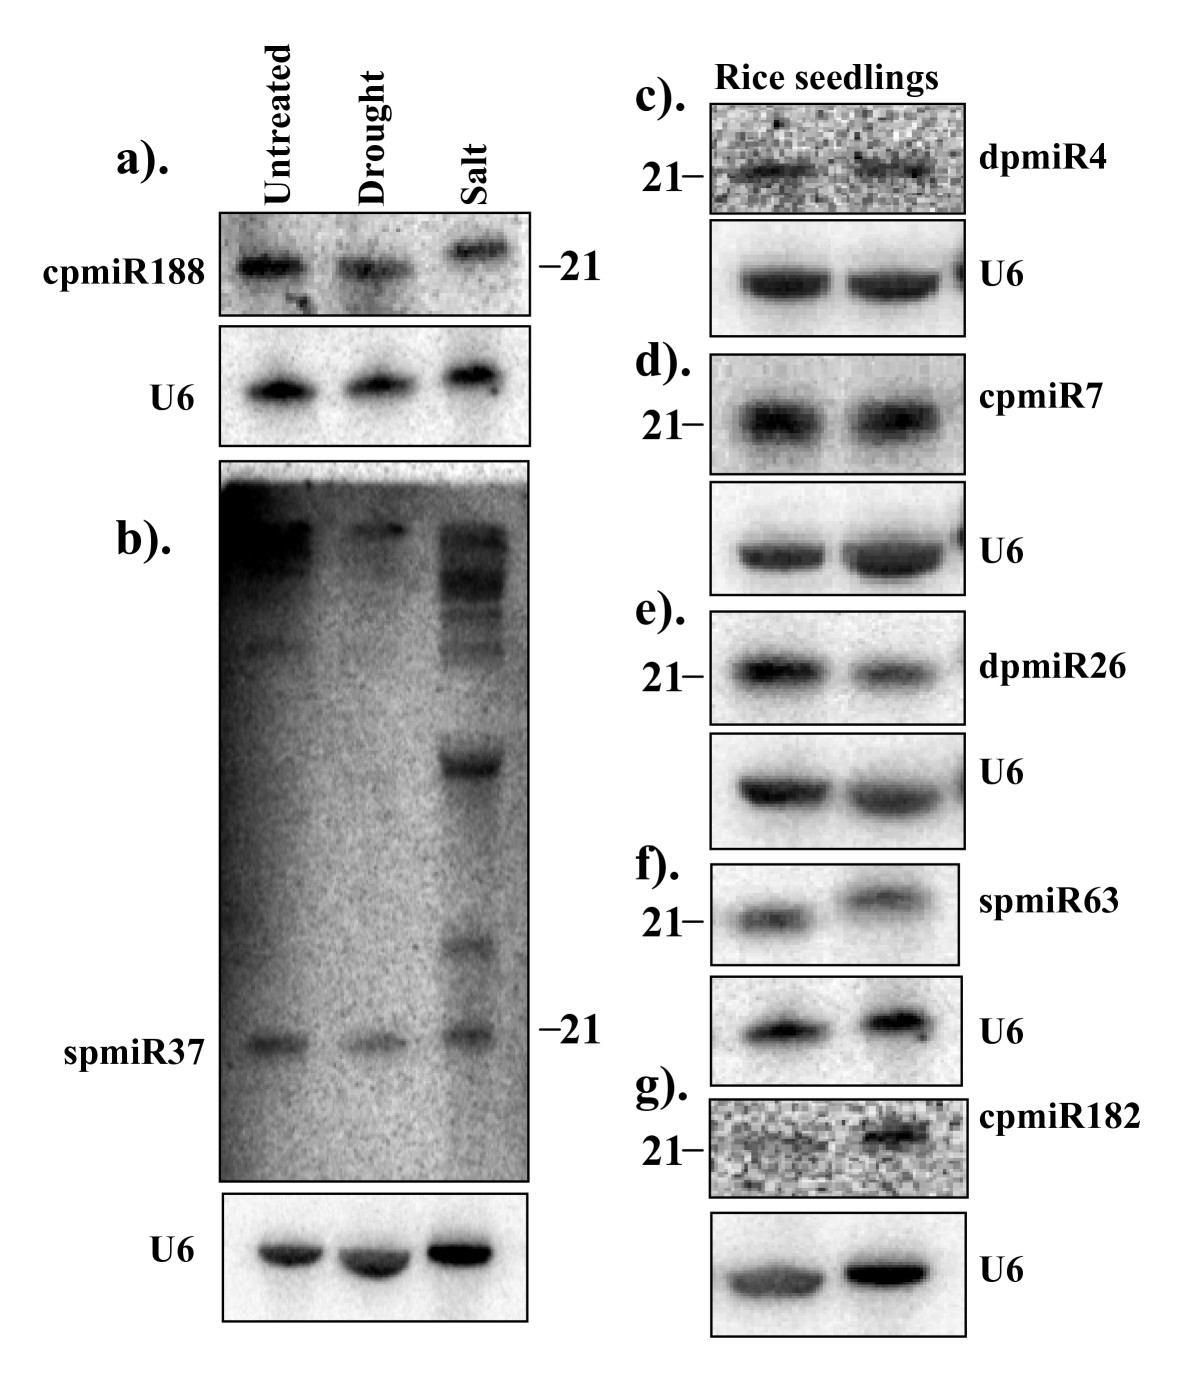 http://static-content.springer.com/image/art%3A10.1186%2F1471-2229-8-25/MediaObjects/12870_2008_Article_233_Fig4_HTML.jpg